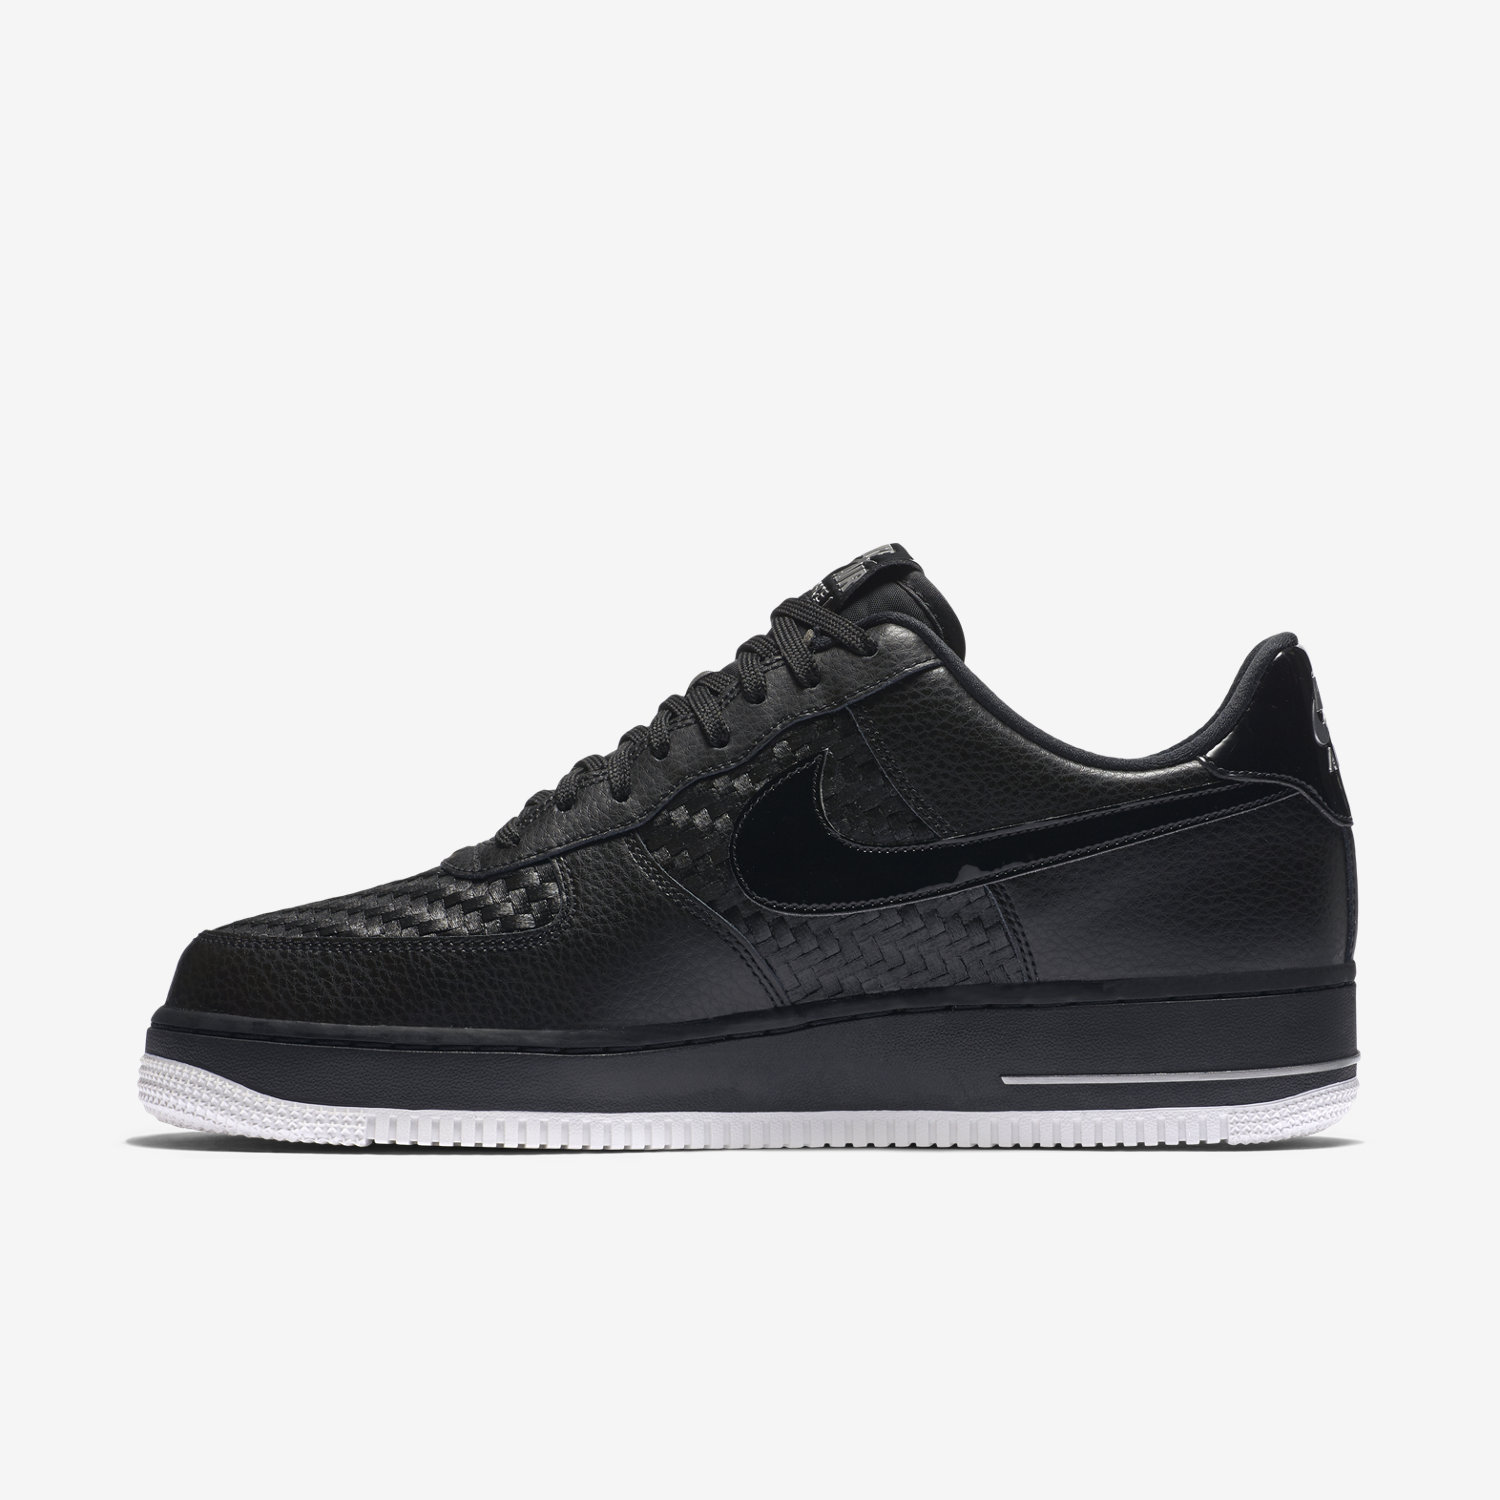 Nike Air Force 1 Mujer Chile